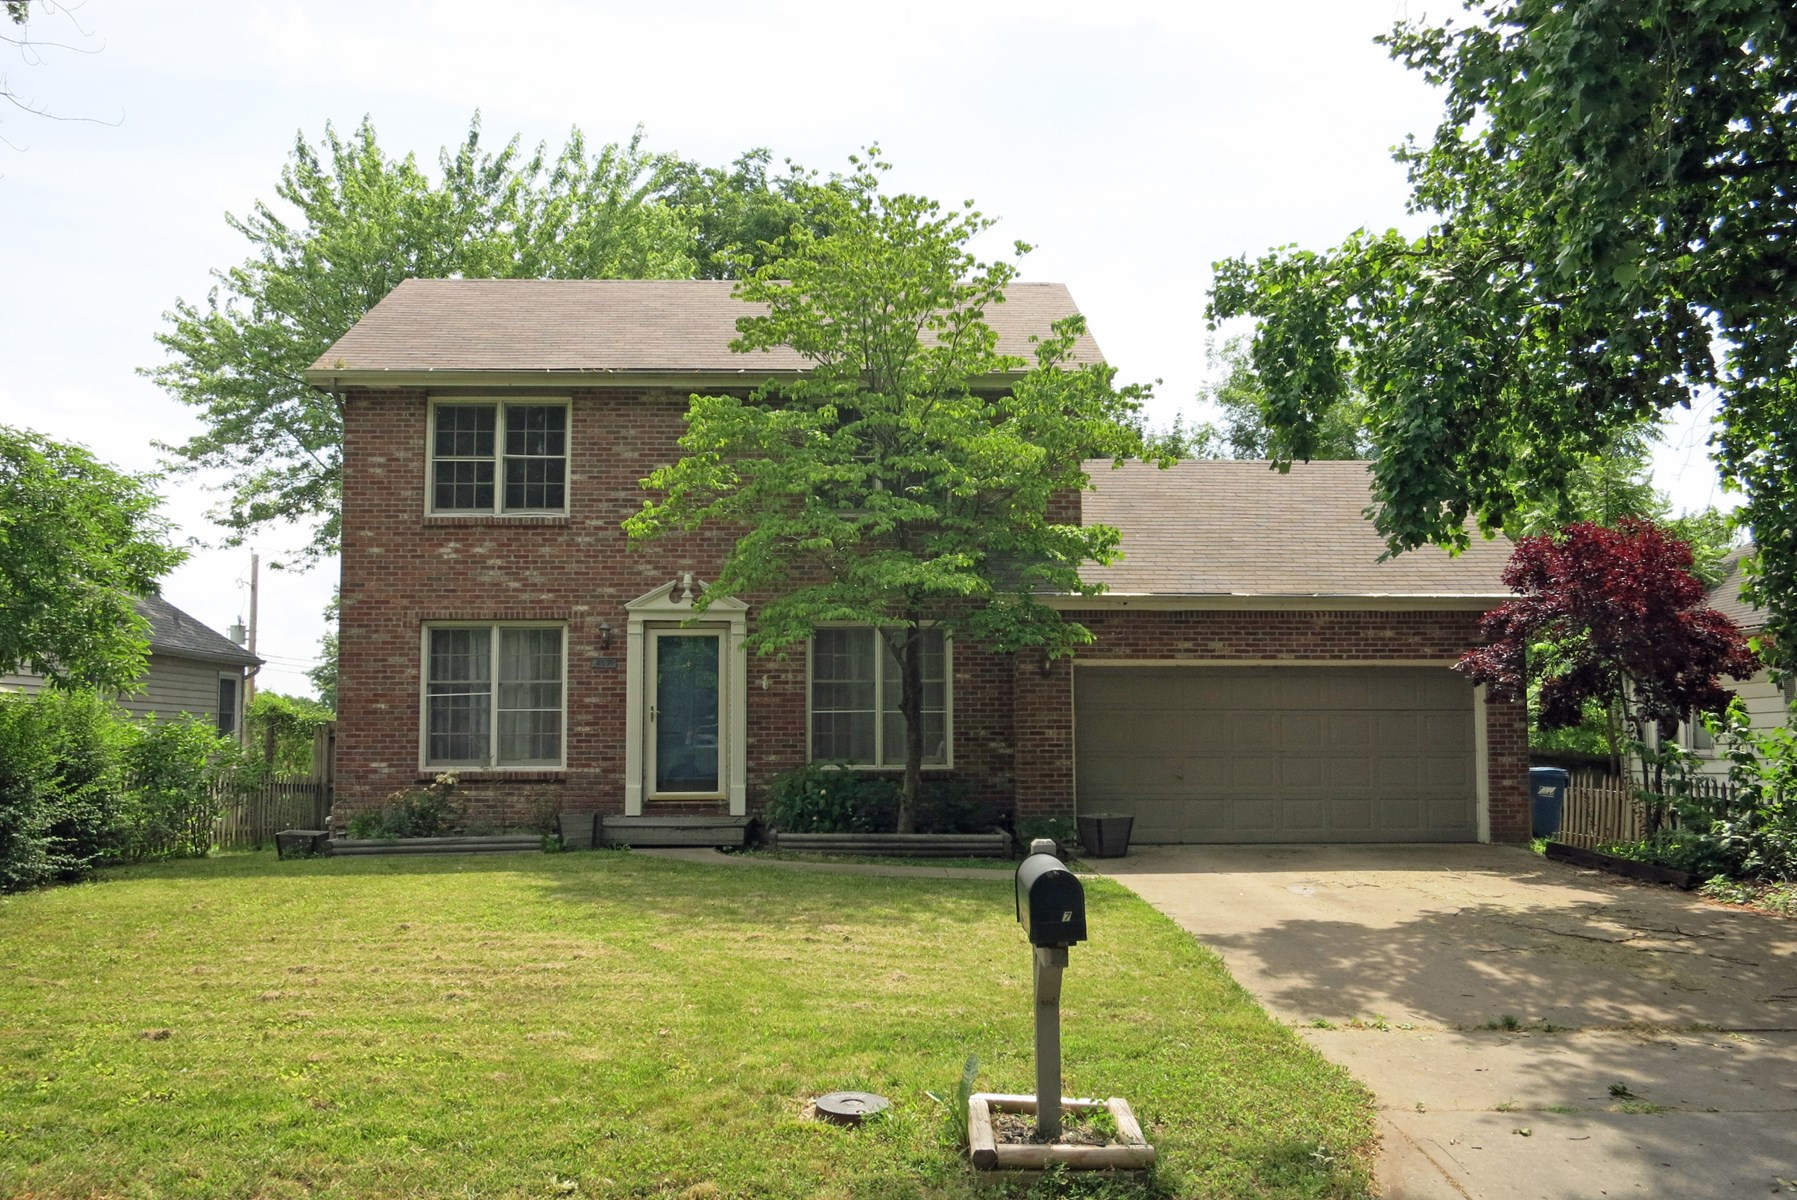 For Sale 2 Story Home Near Downtown Liberty, MO